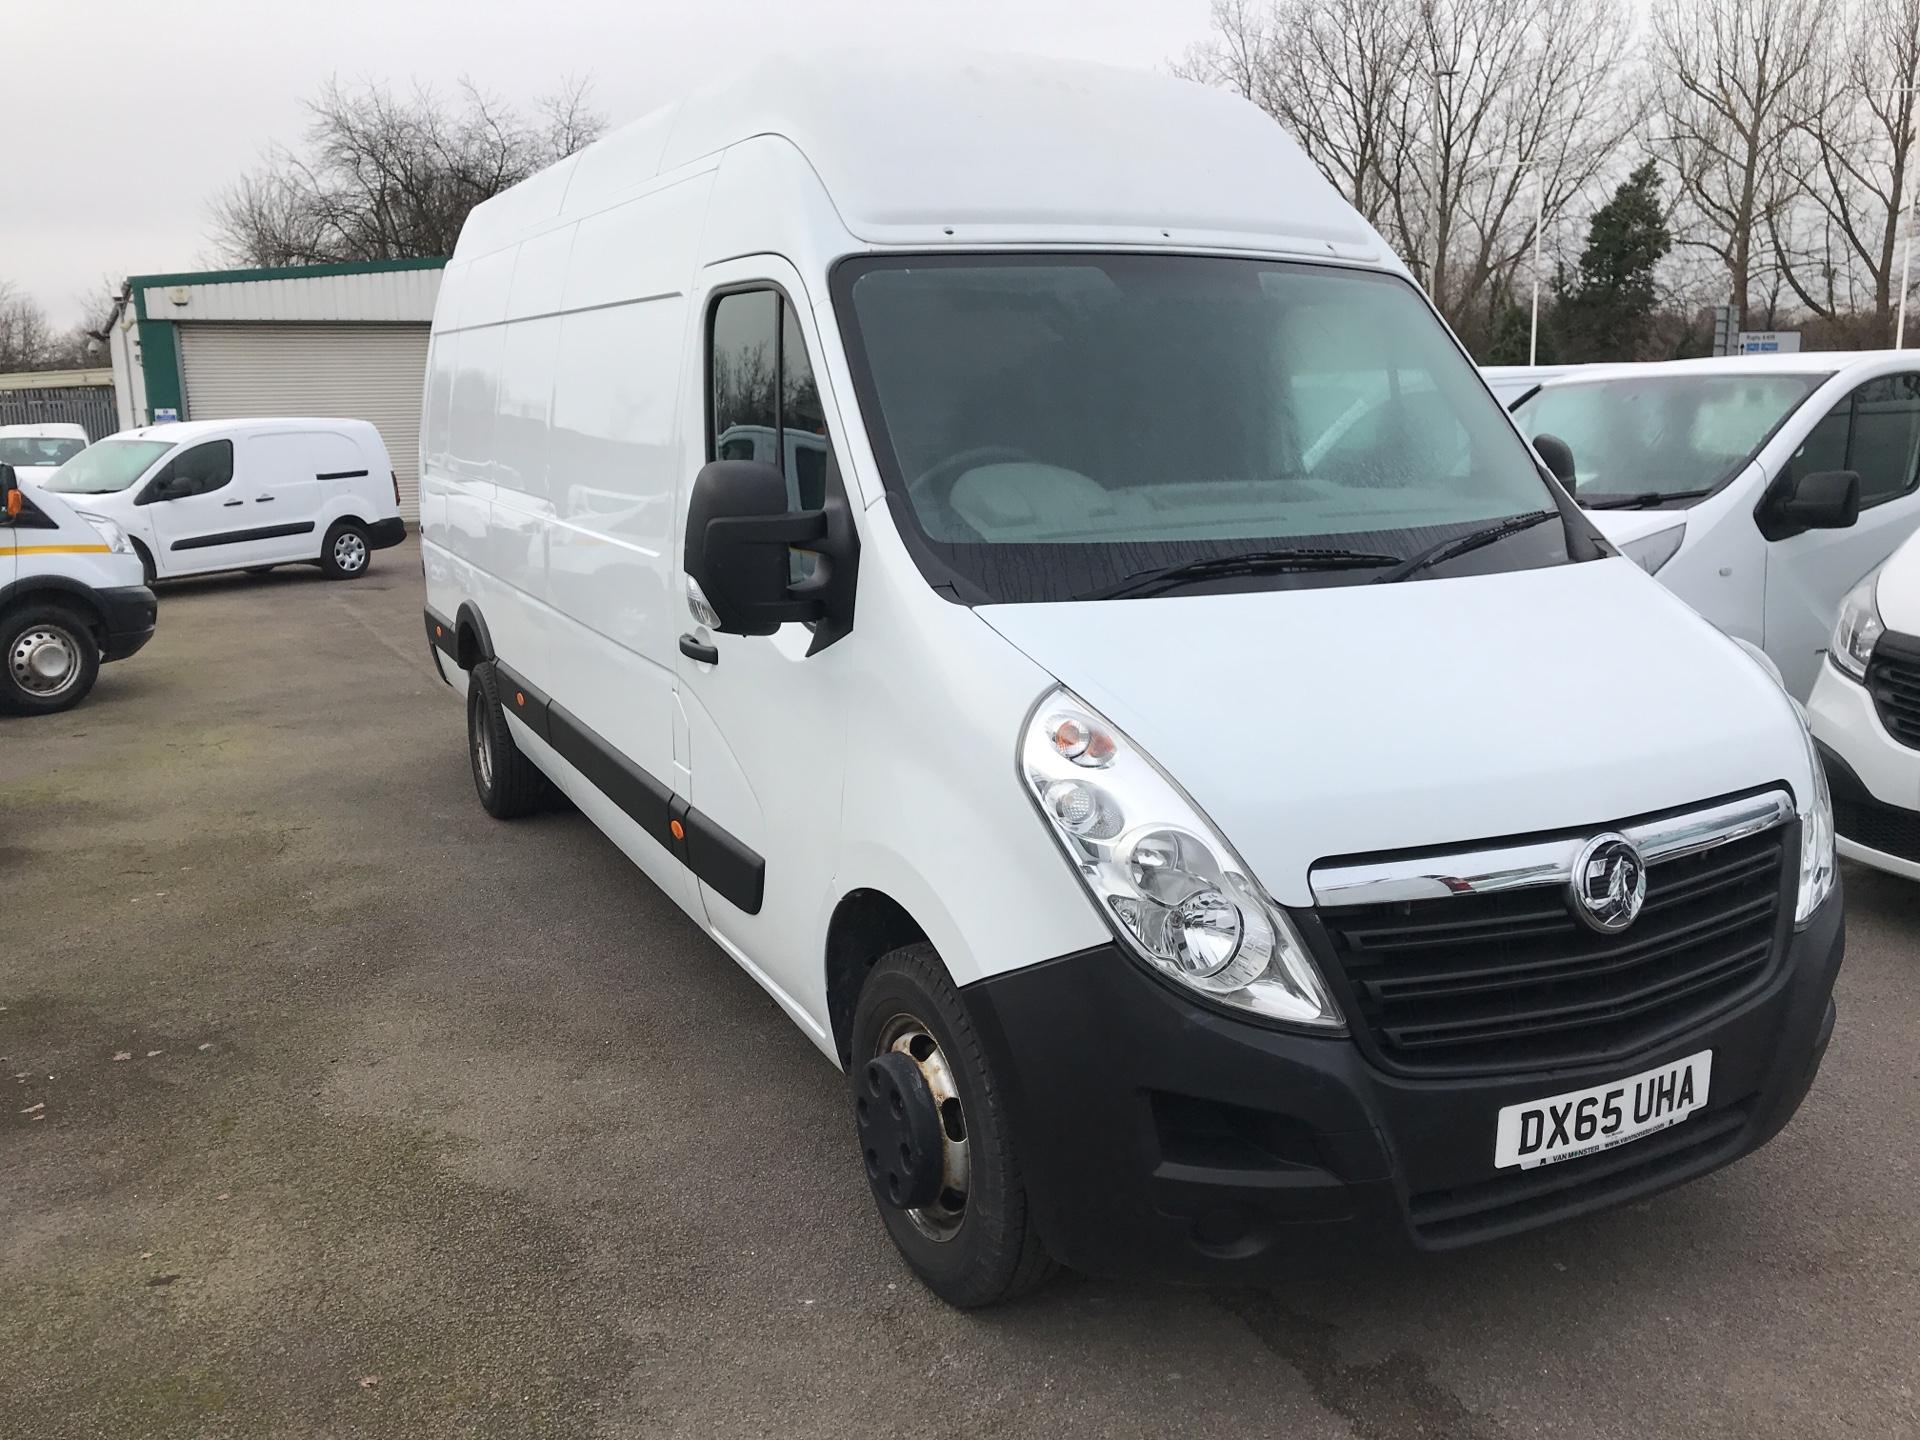 2015 Vauxhall Movano 35 L4 H3 125PS EURO 5 *VALUE RANGE VEHICLE - CONDITION REFLECTED IN PRICE* (DX65UHA)